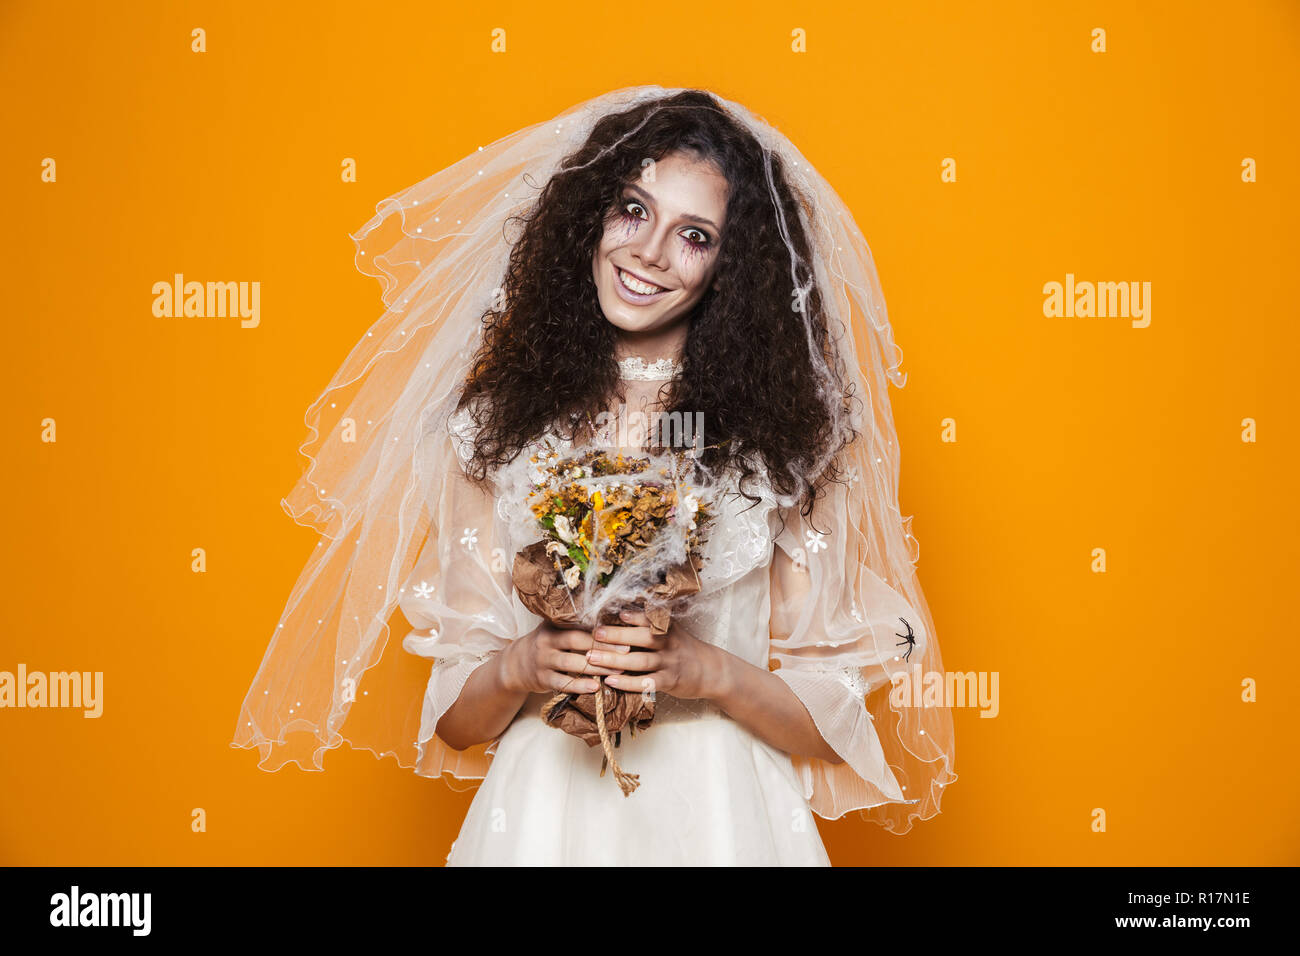 Image Of Dead Bride Zombie On Halloween Wearing Wedding Dress And